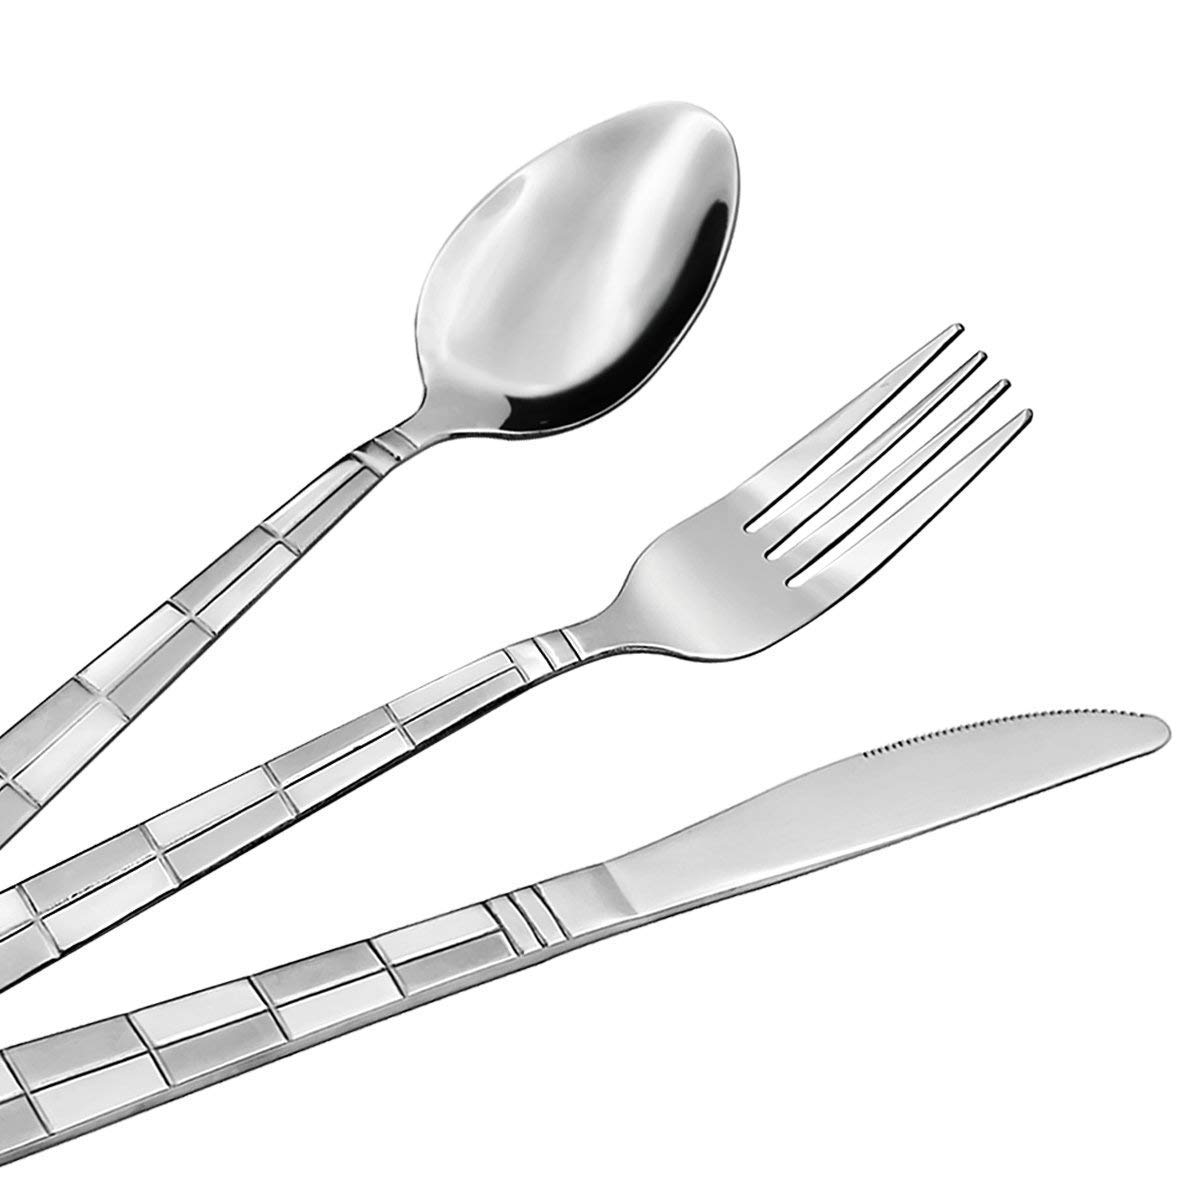 20 Piece Silverware Set, Checkered Frost Stainless Steel Flatware set Service for 4 by Hippih, Dishwasher Safe by HIPPIH (Image #3)